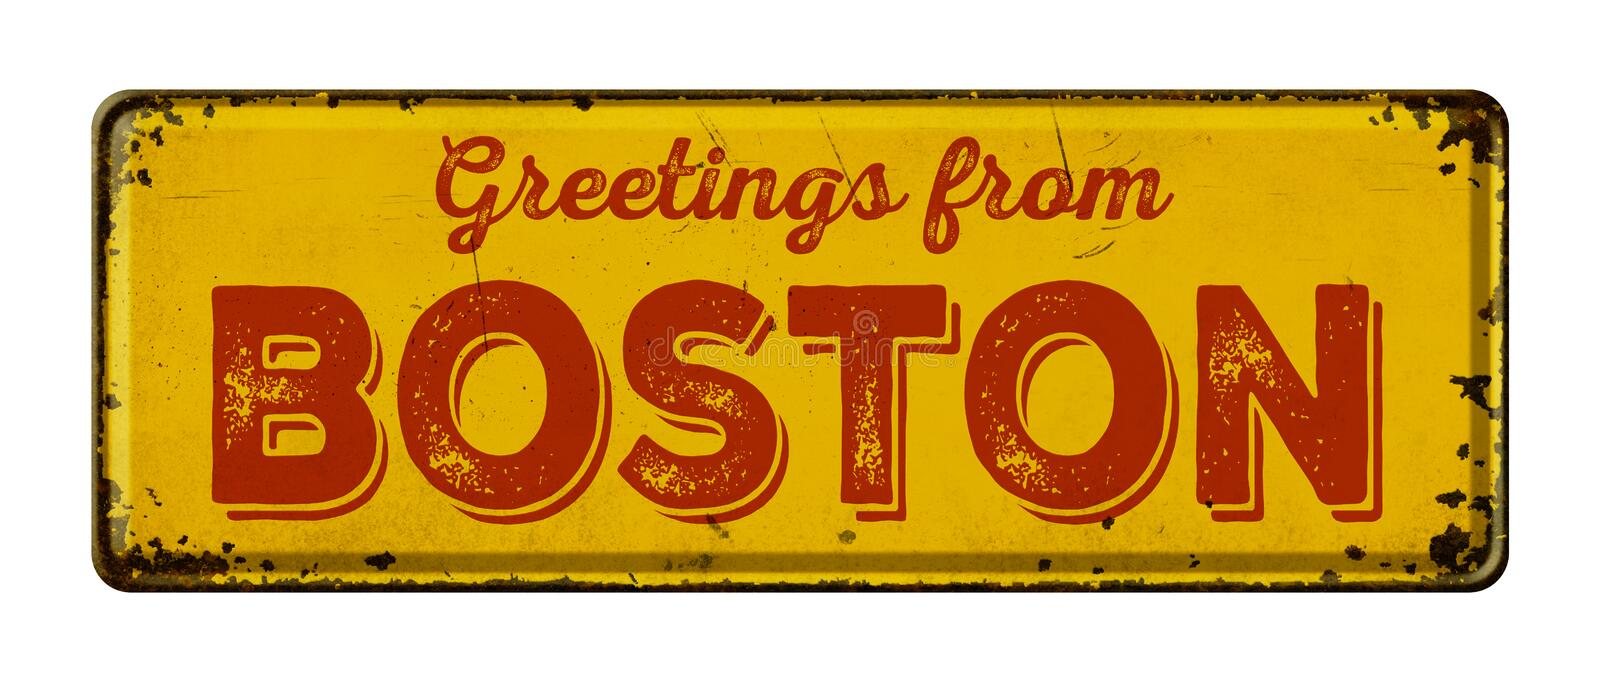 Greetings from Boston royalty free stock images